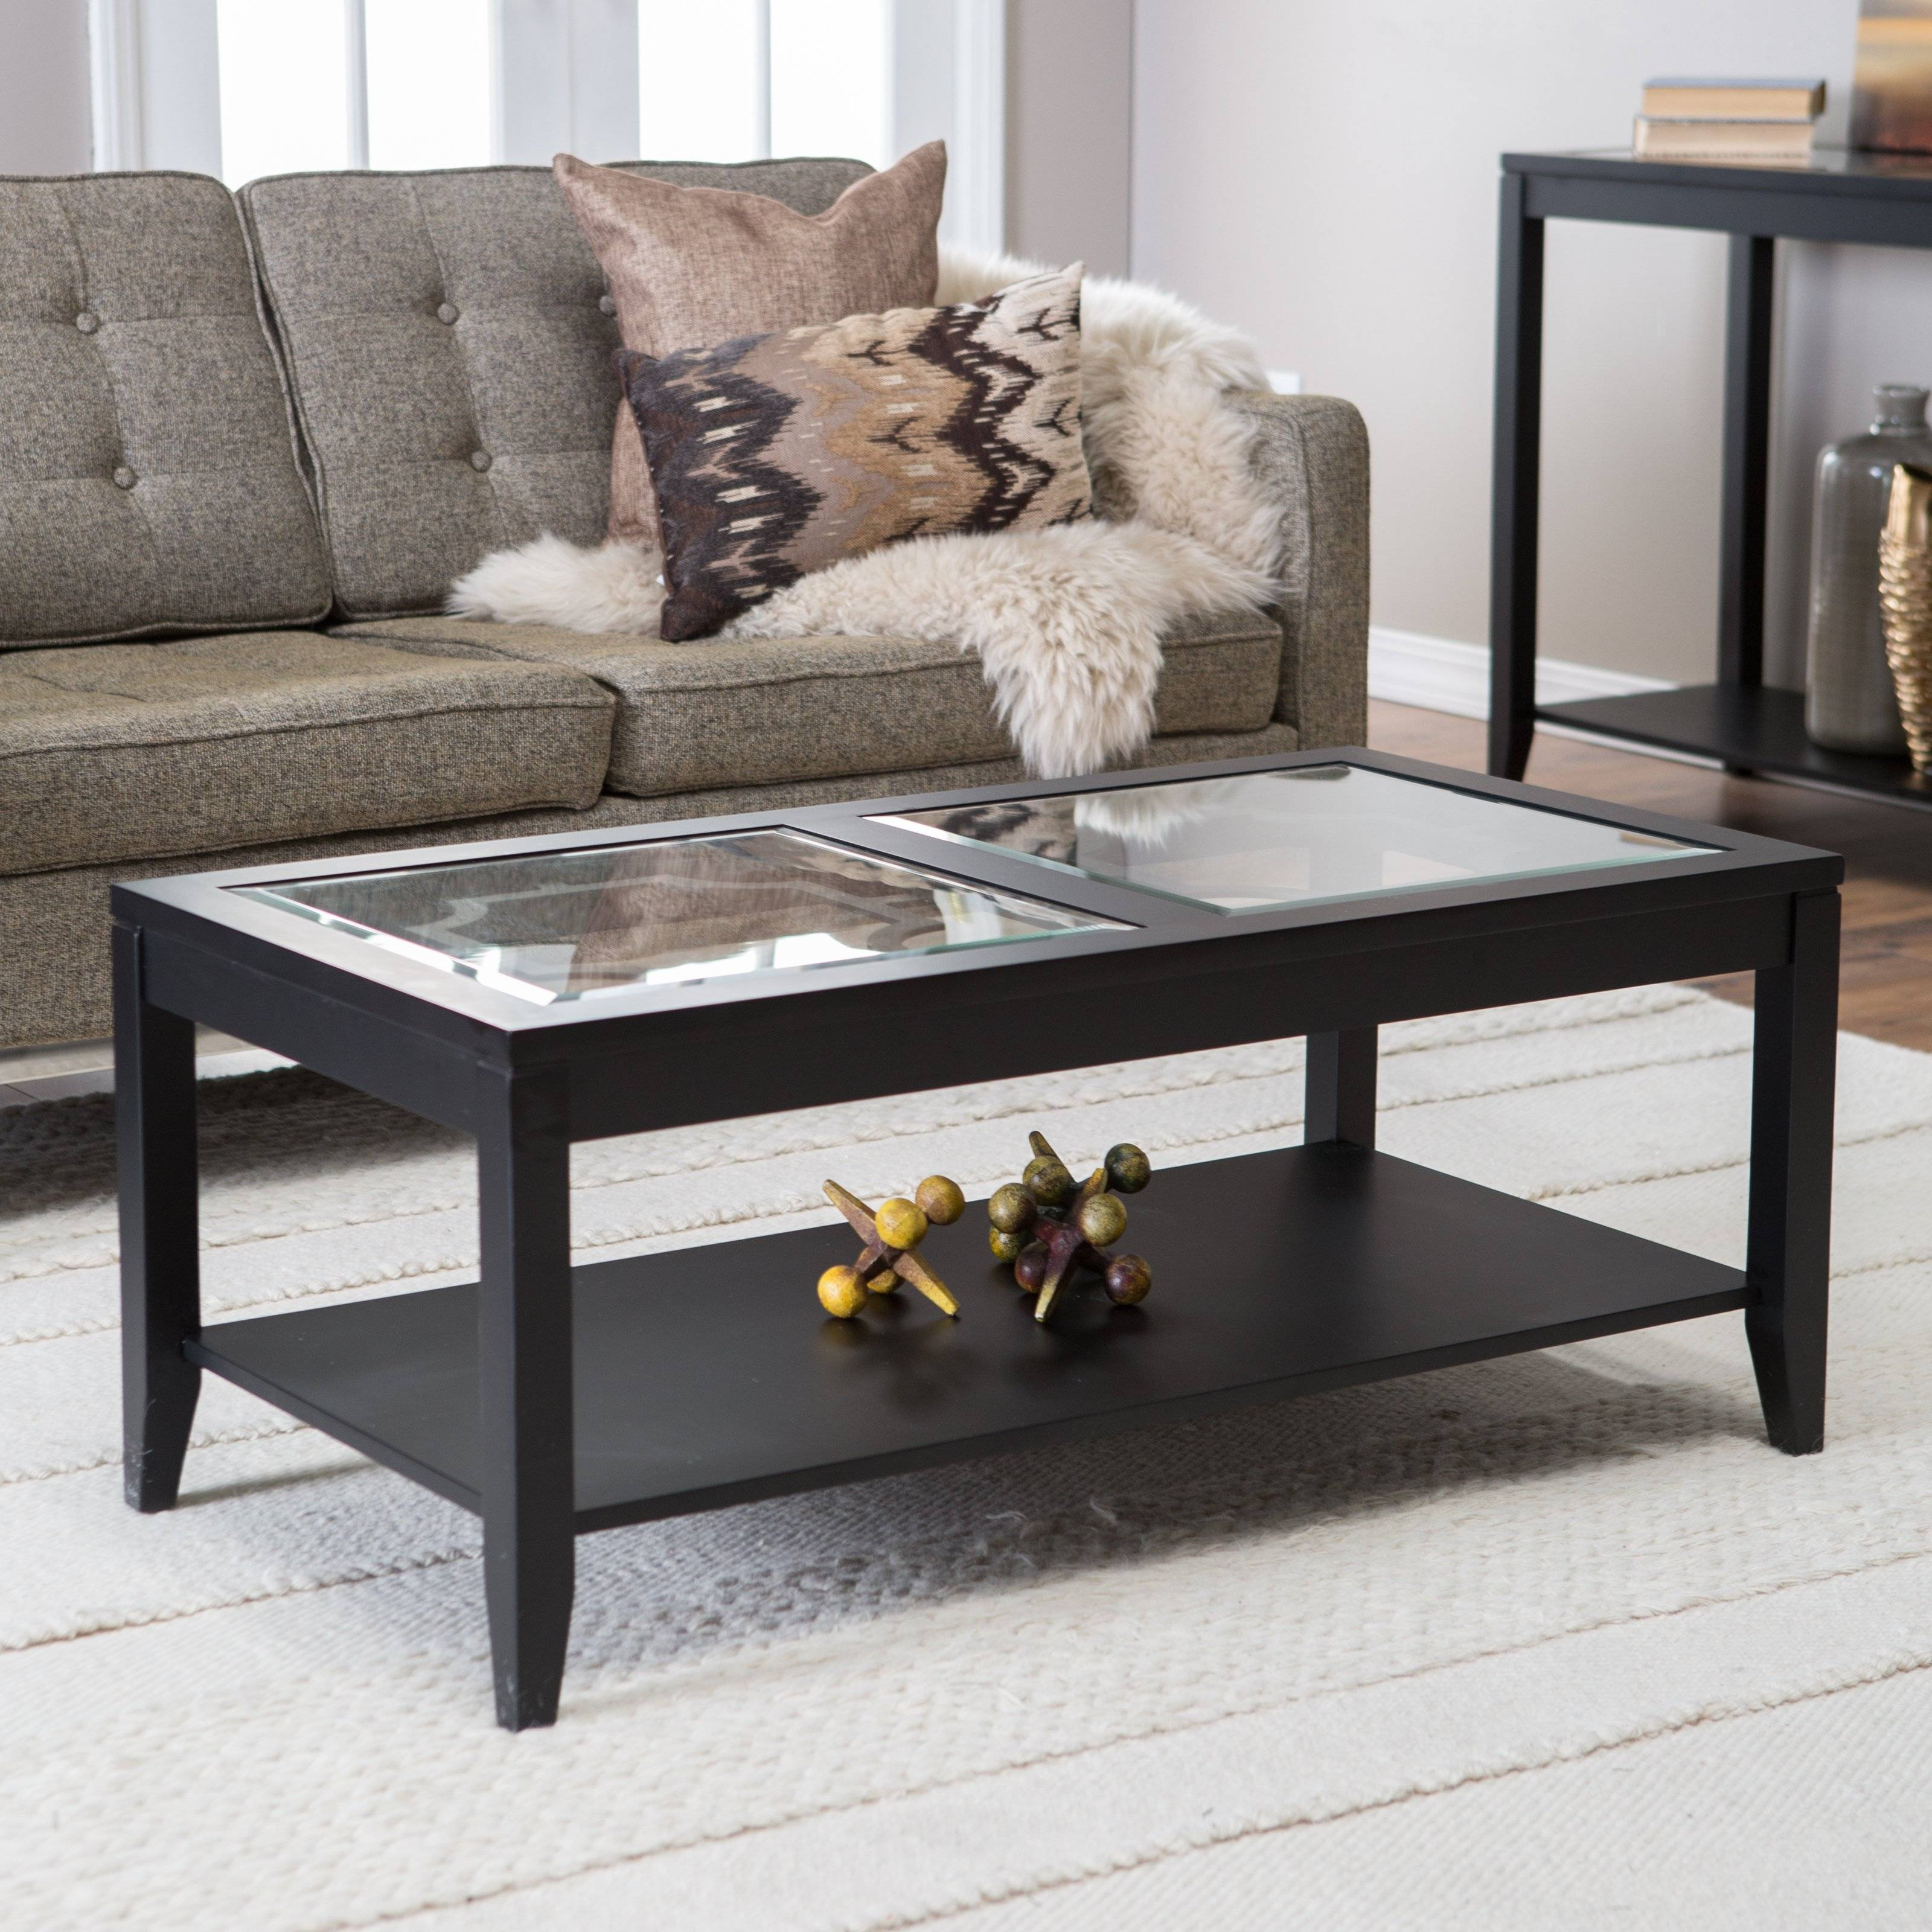 Coffee Table: Latest Coffee Table Glass Top Ideas Coffee Tables for Wooden and Glass Coffee Tables (Image 6 of 30)